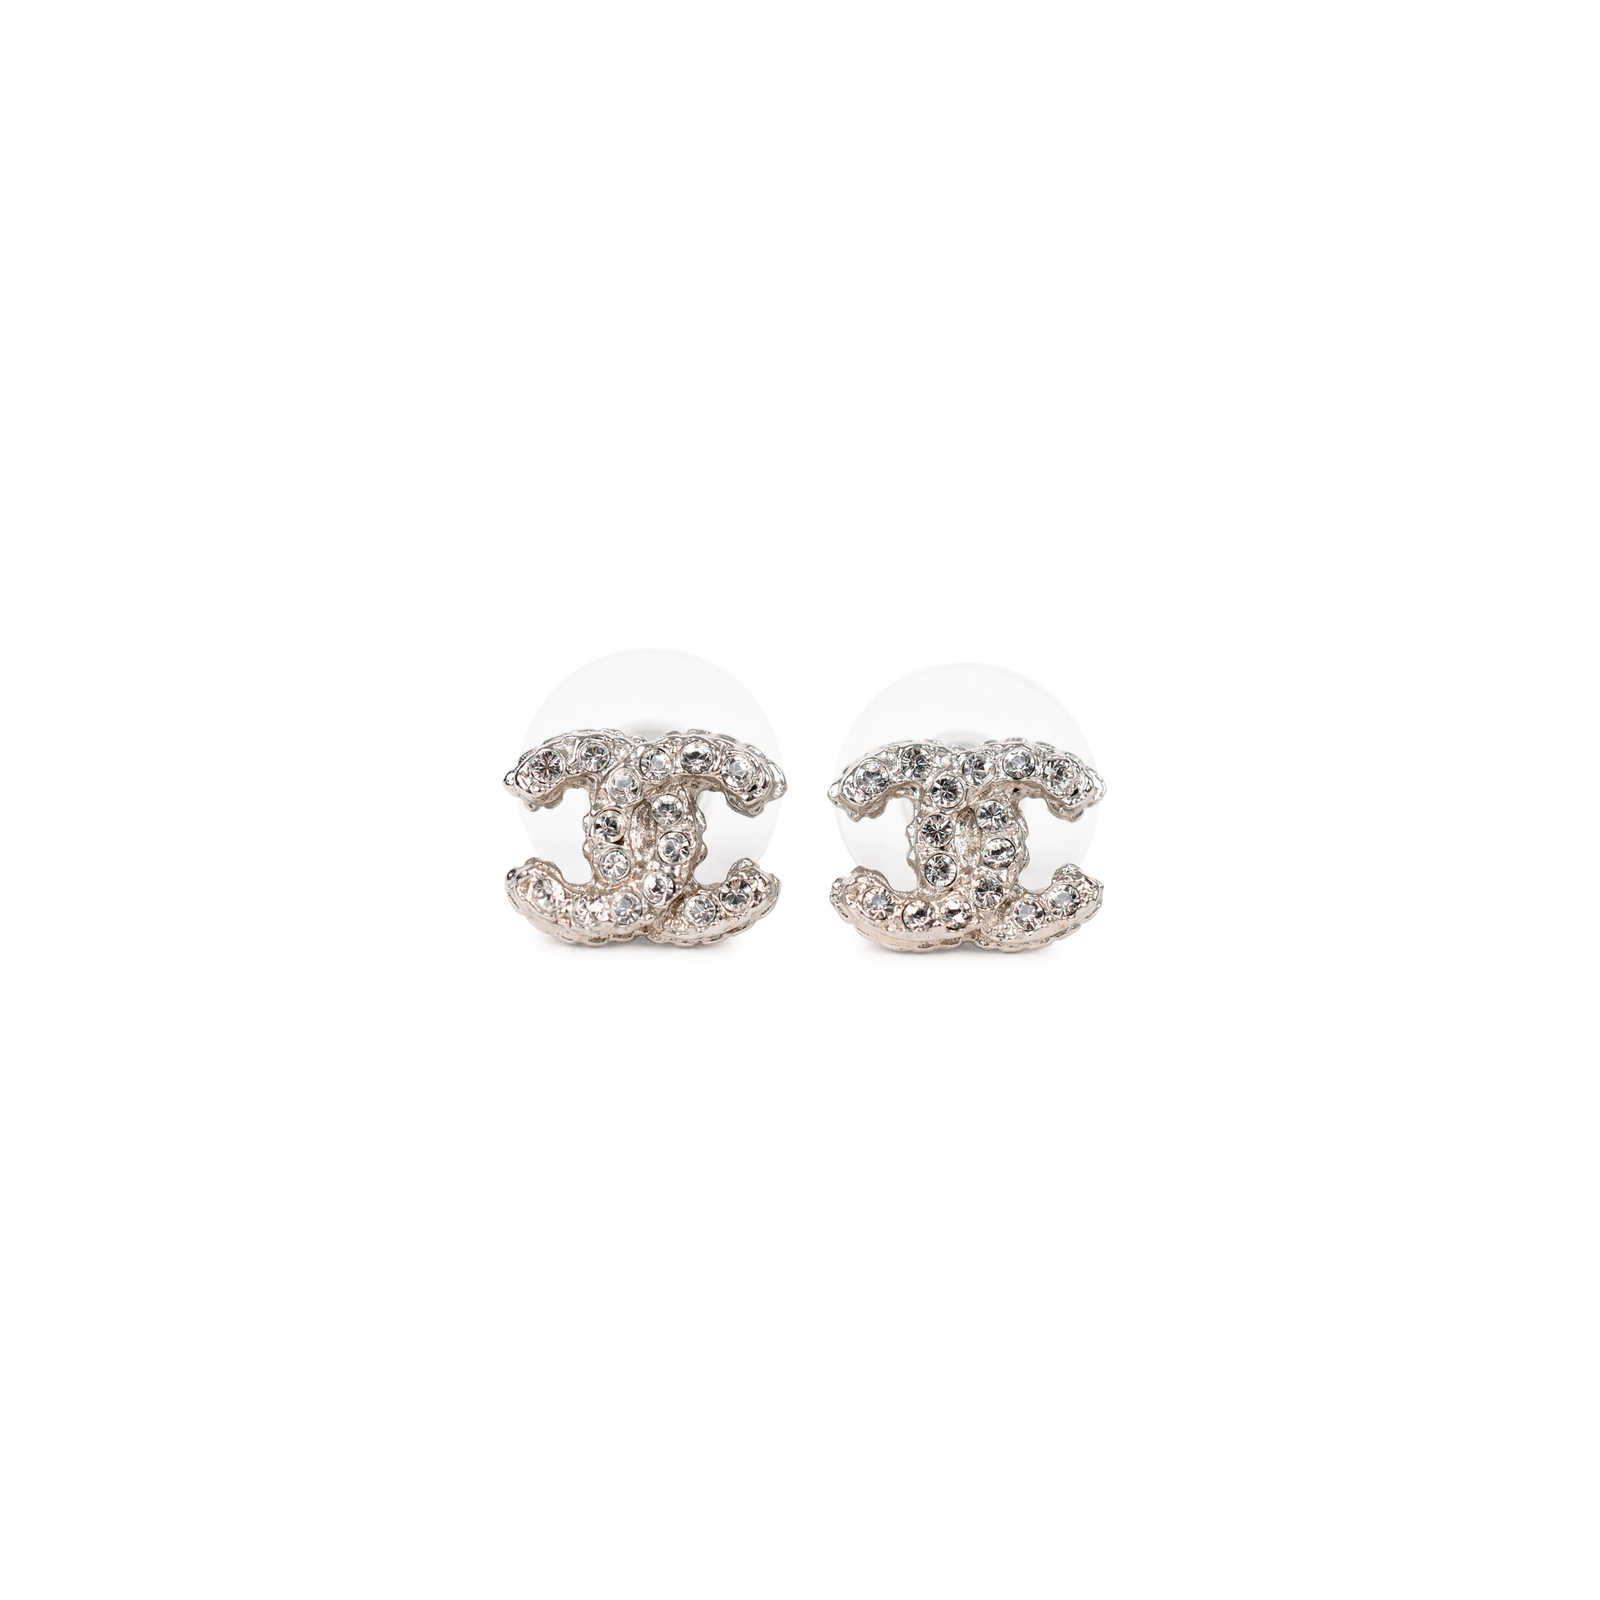 Authentic Pre Owned Chanel Logo Stud Earrings Pss 214 00037 Thumbnail